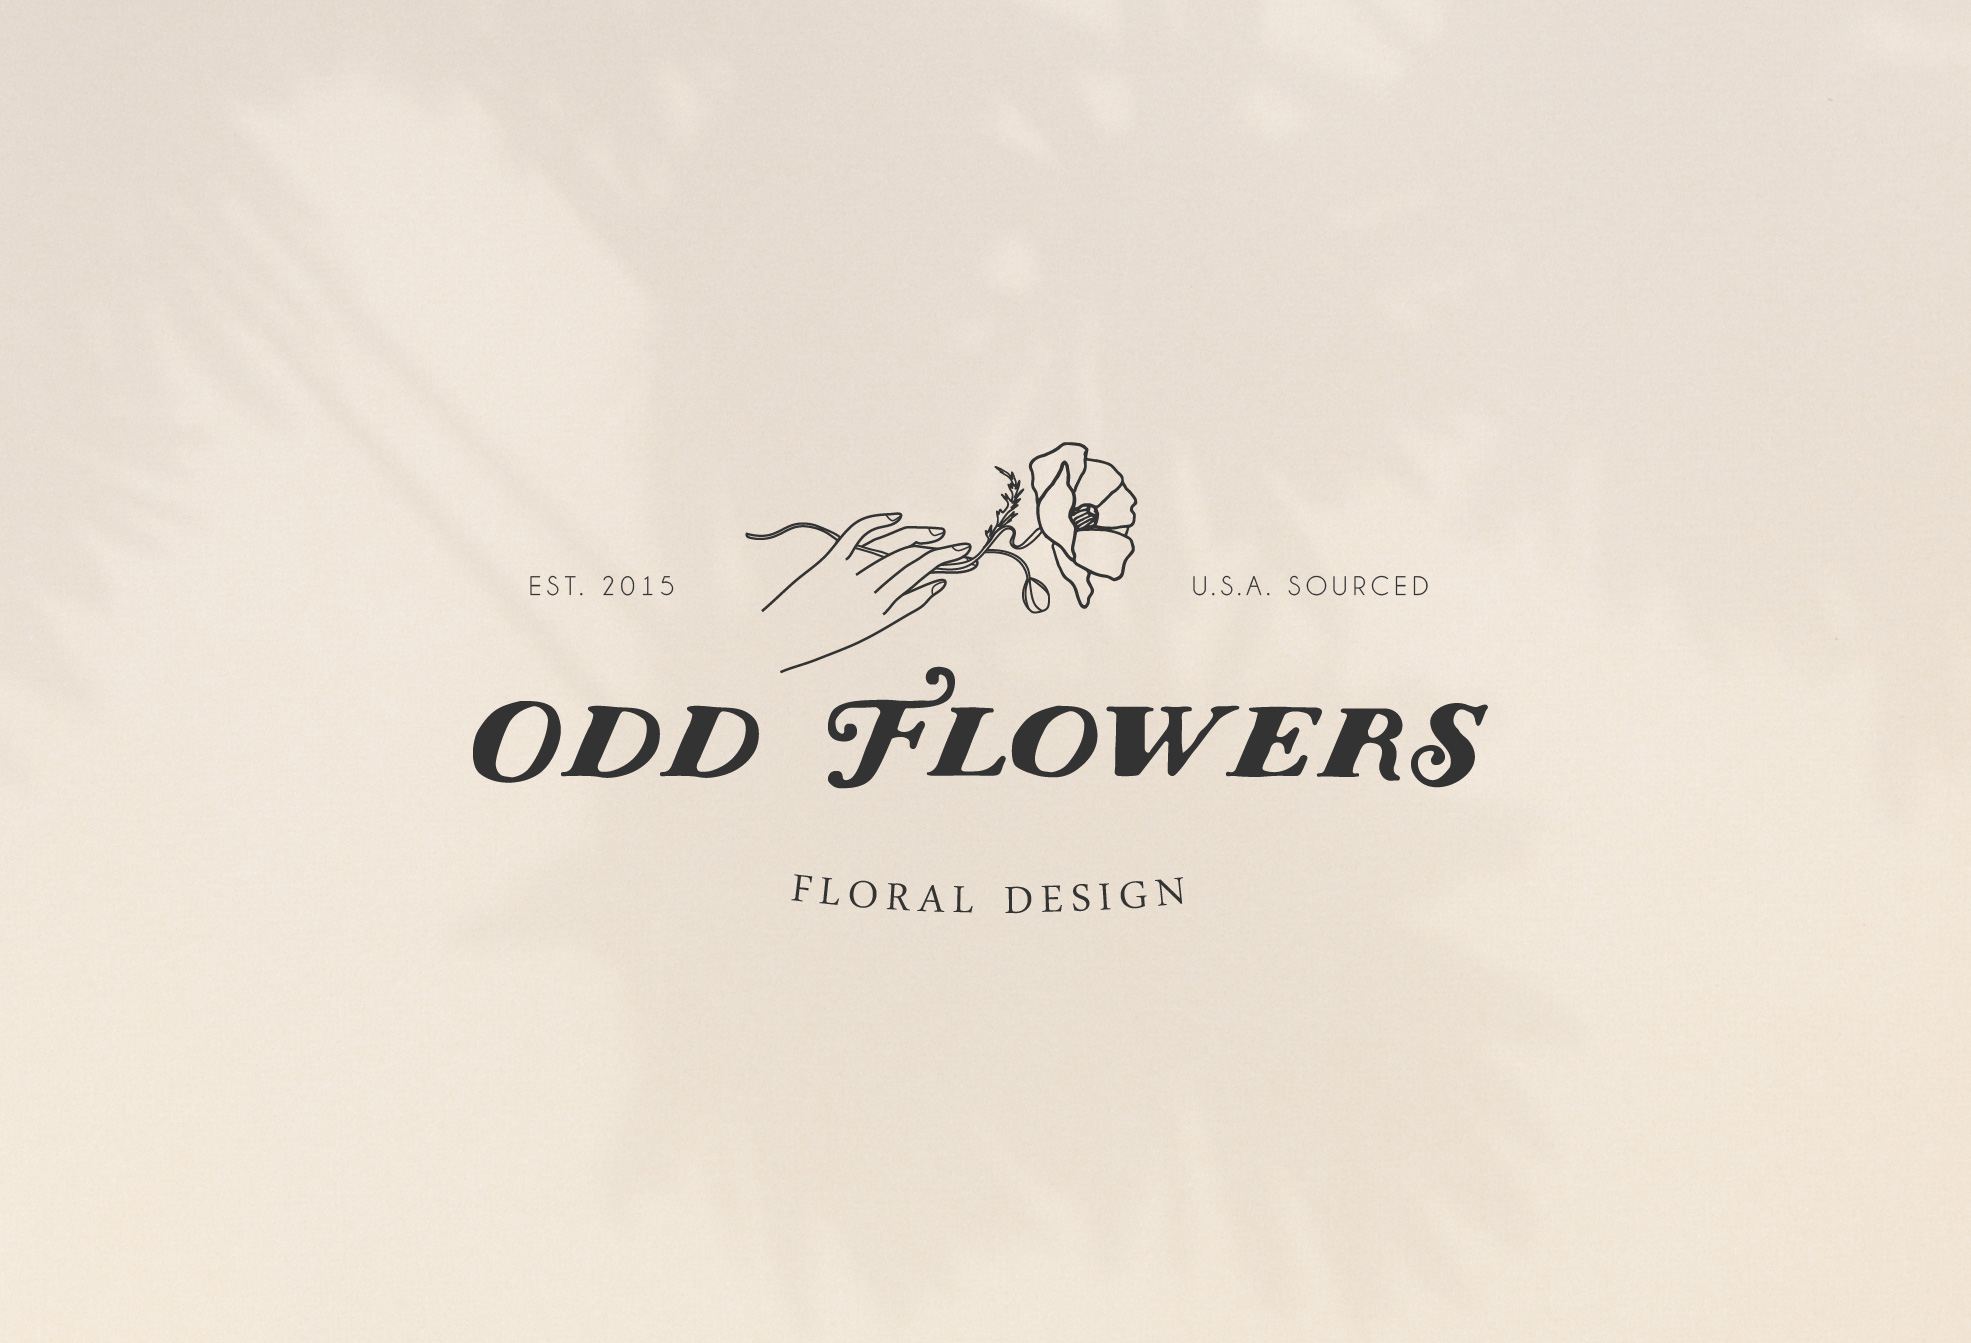 odd flowers flower arrangements logo design